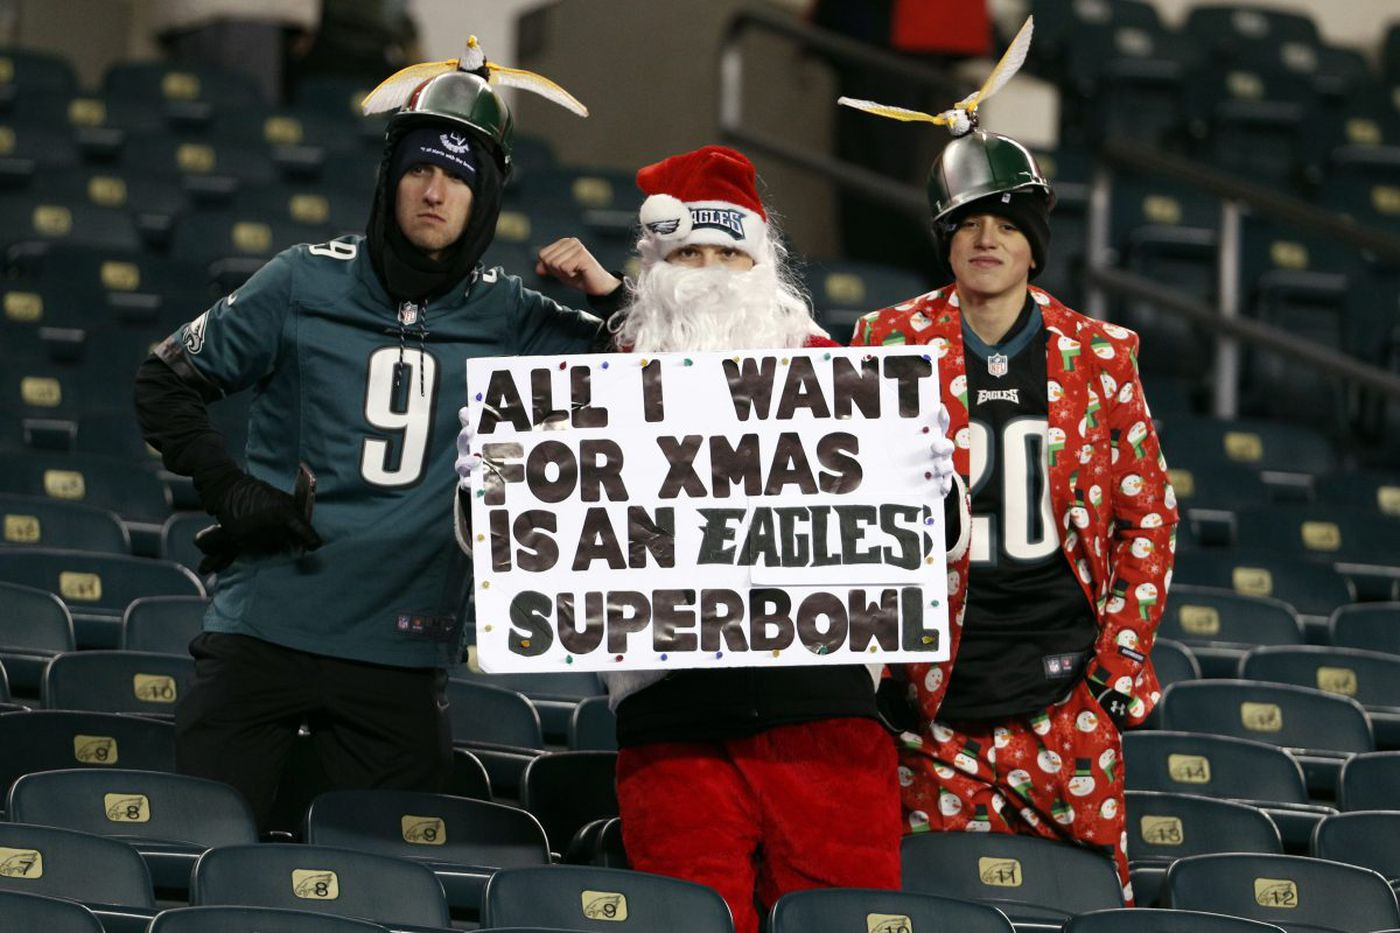 An Eagles Super Bowl victory and other wishes for 2018 in Philly   John Dougherty